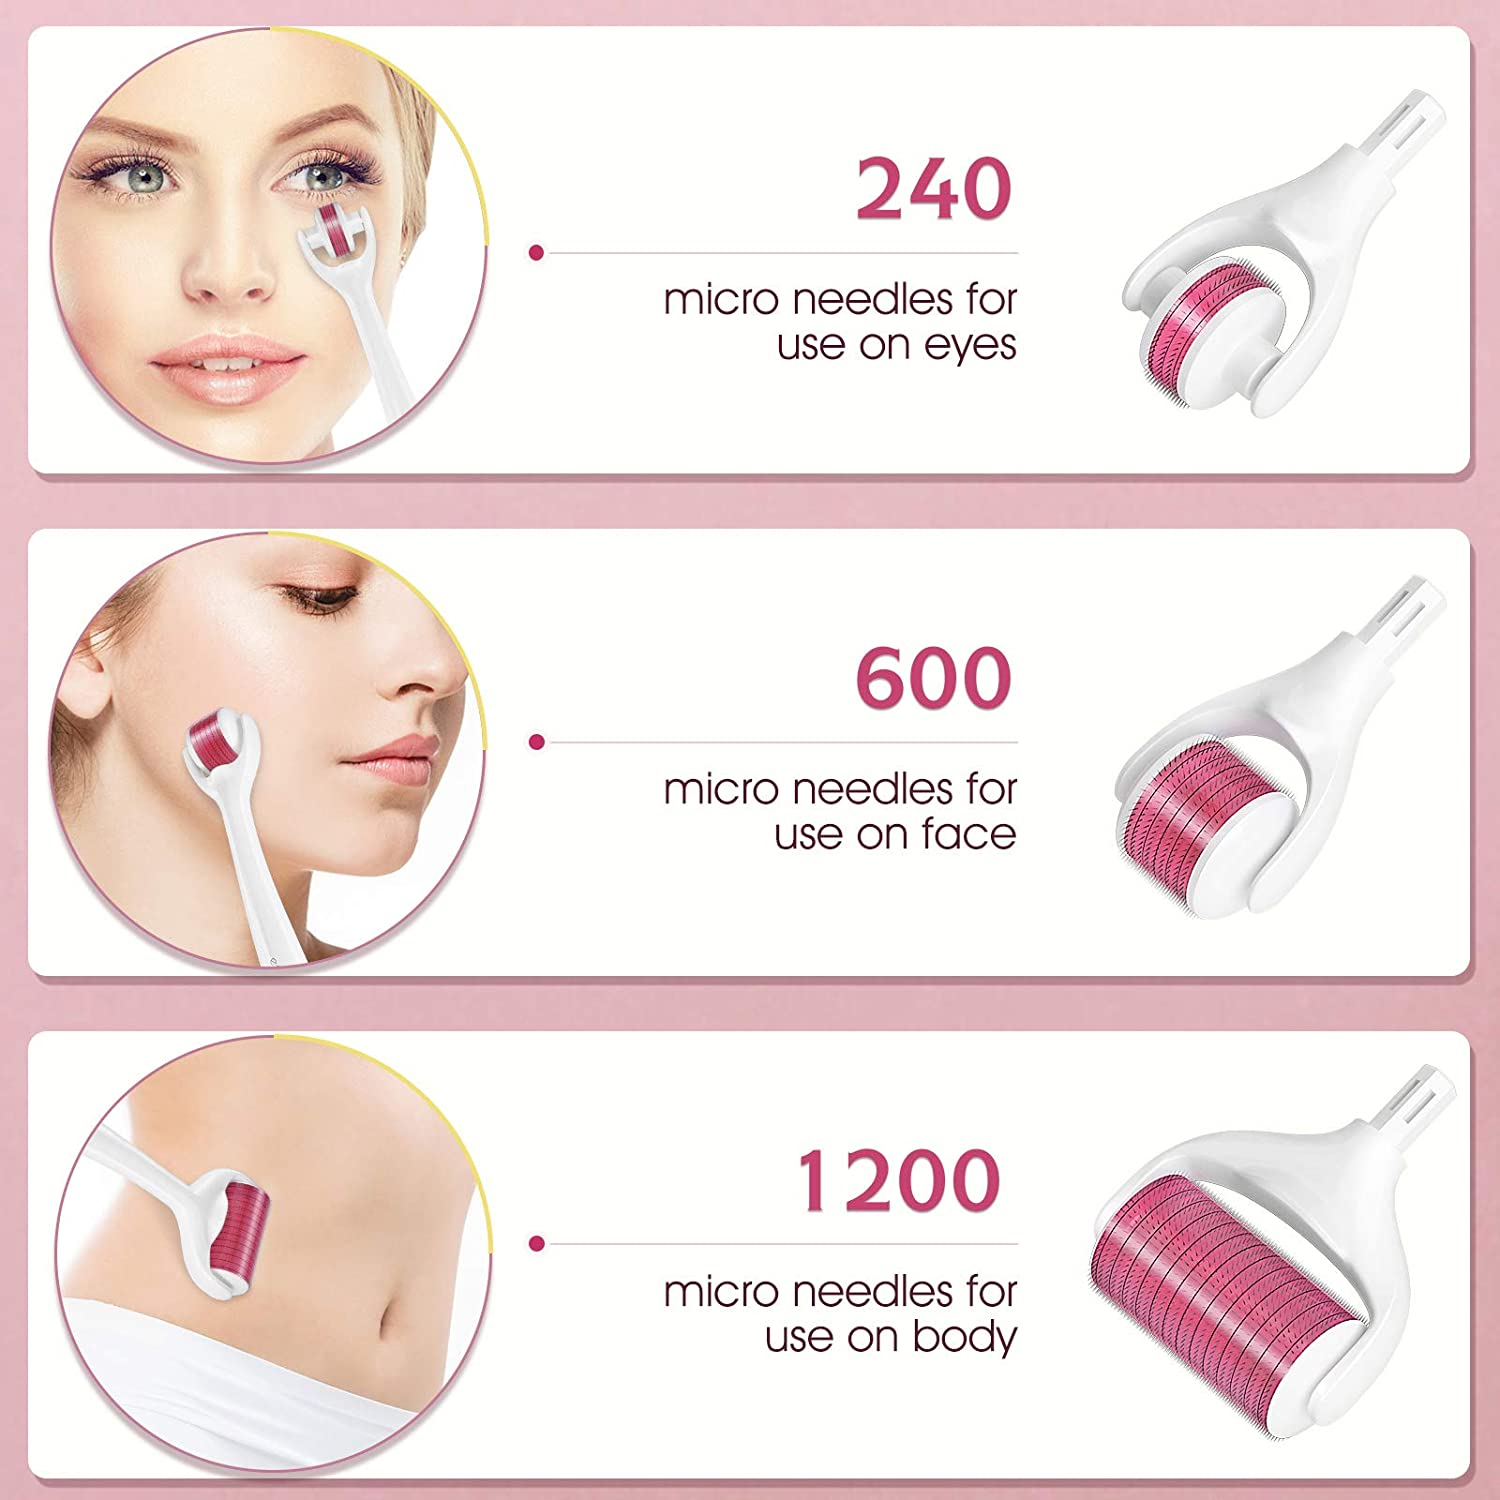 Microneedling Roller, Derma Roller Quartz Face Massager Set with 3 Replaceable Heads for Skin Care (Rose)